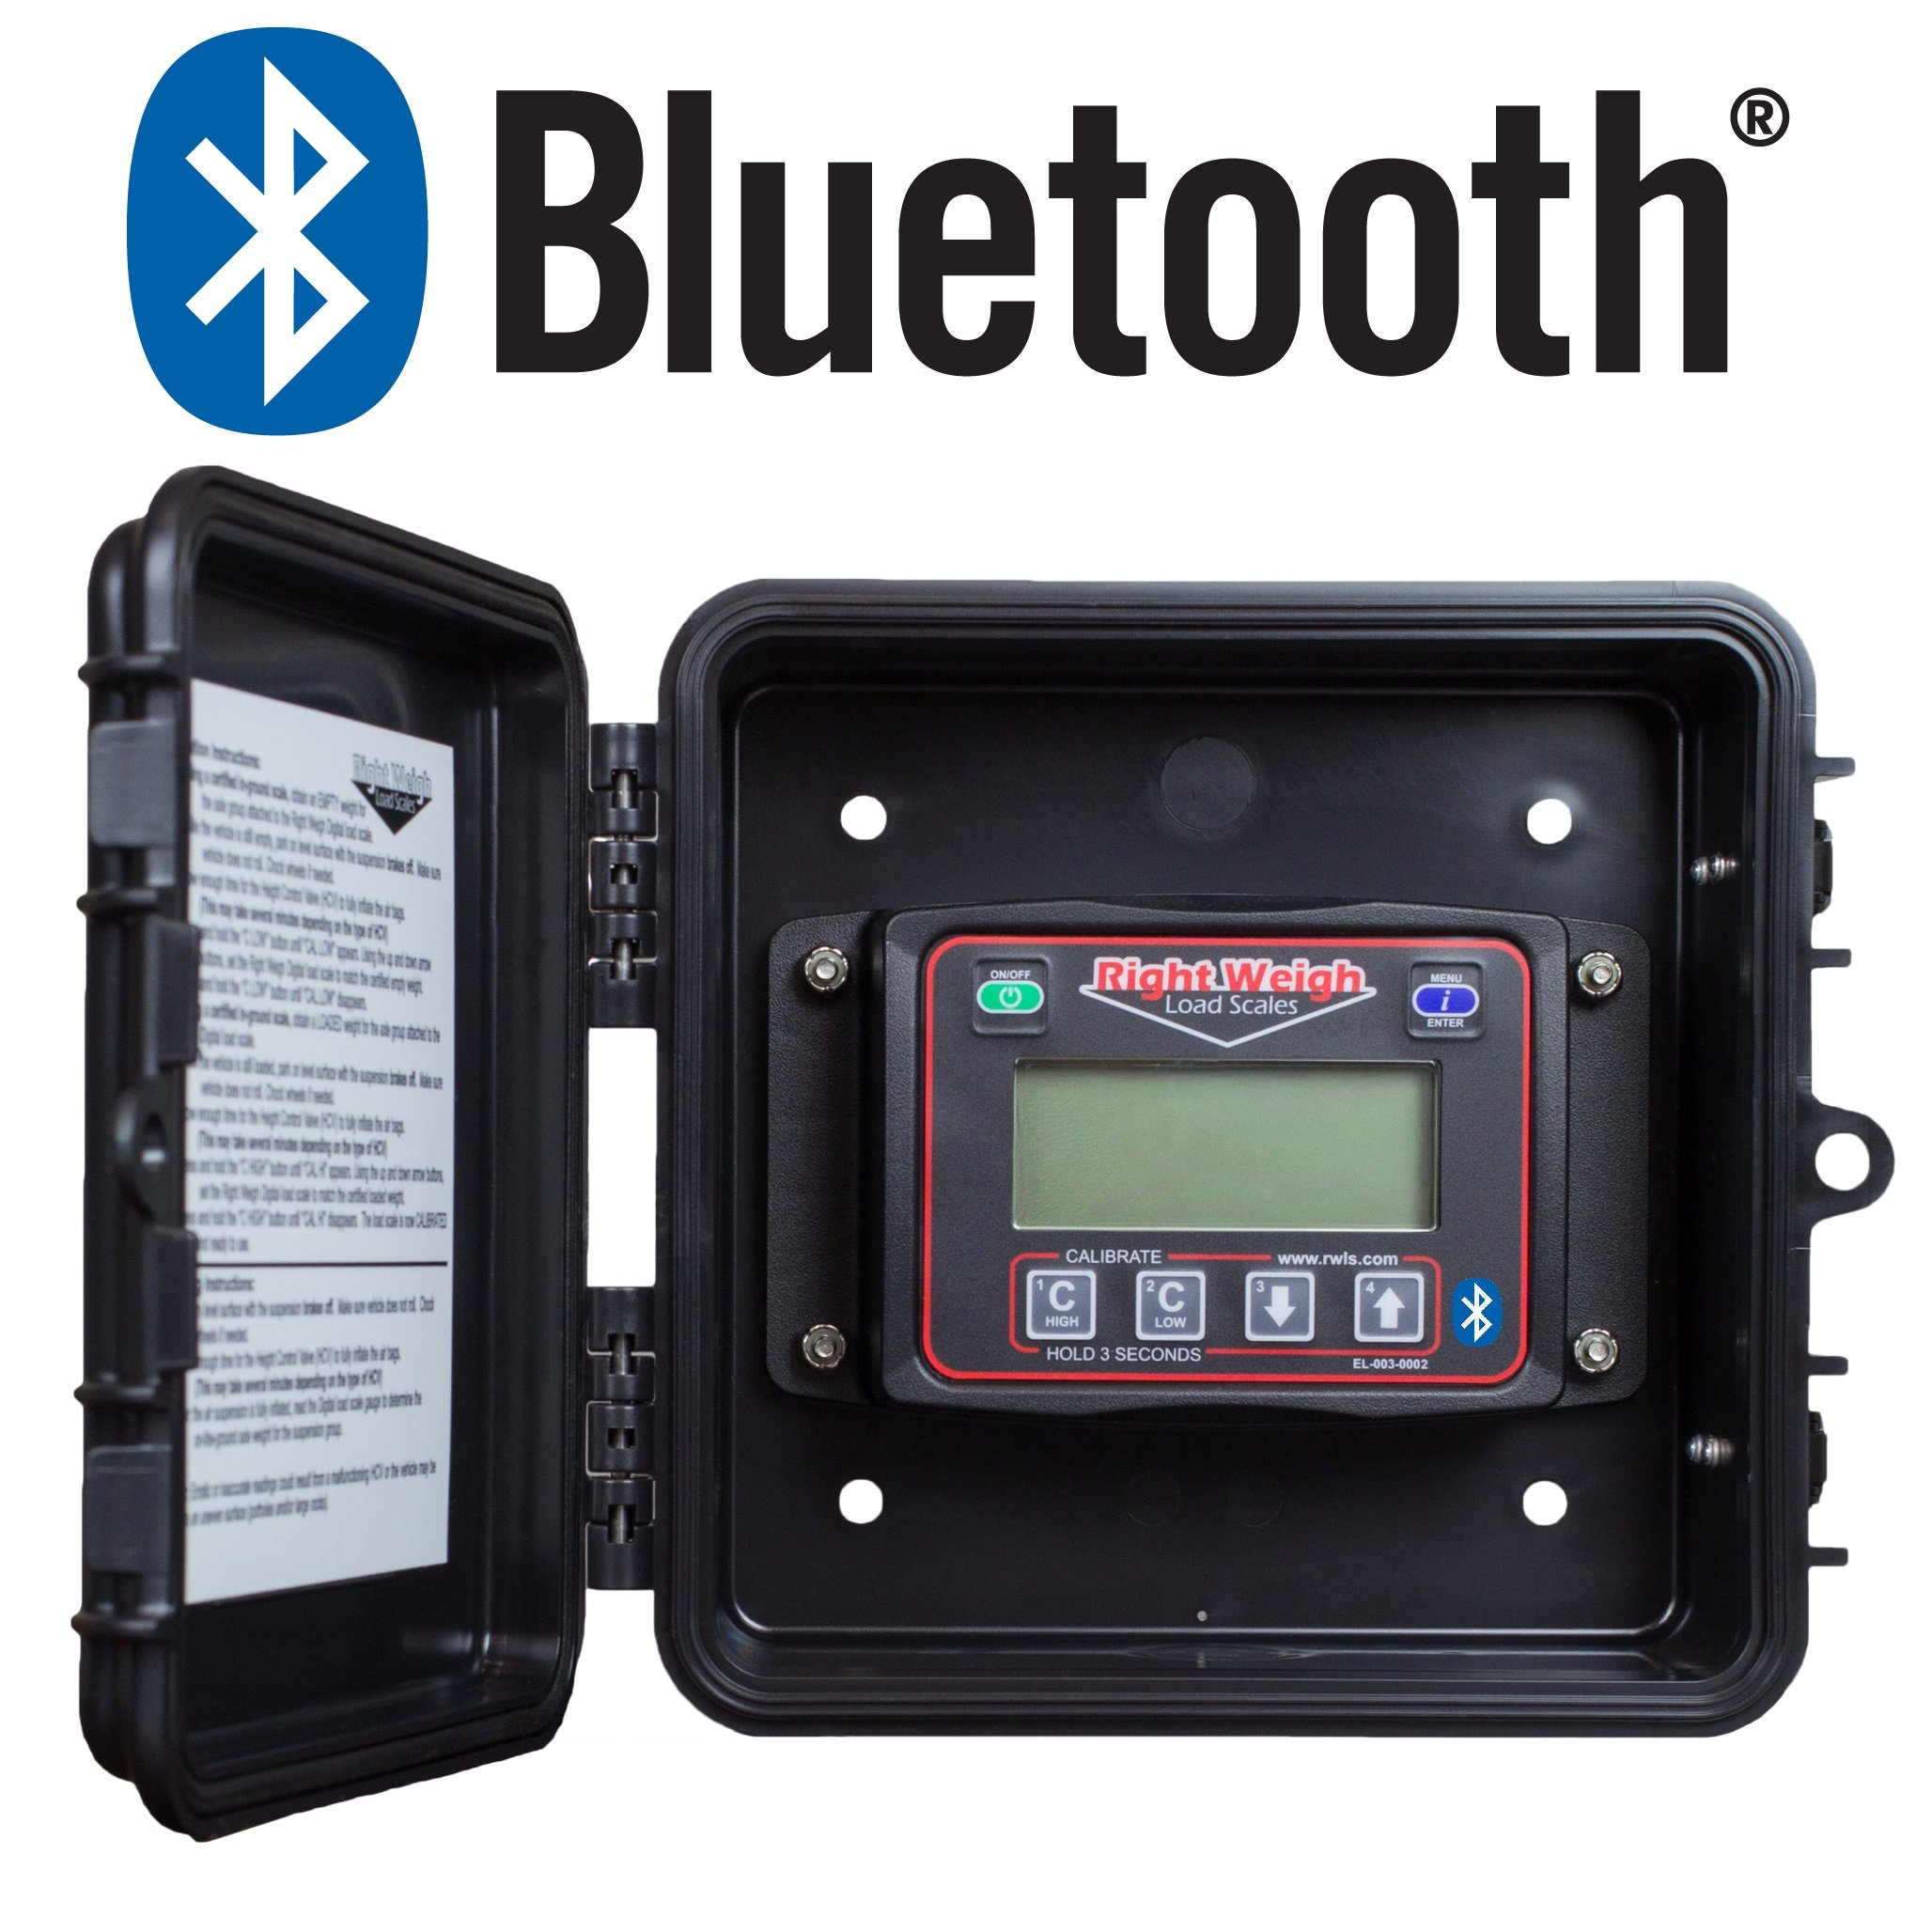 Bluetooth-Enabled Right Weigh 201-EBT-01B Exterior Digital Axle Load Scale - for Single Height Control Valve Air Suspensions